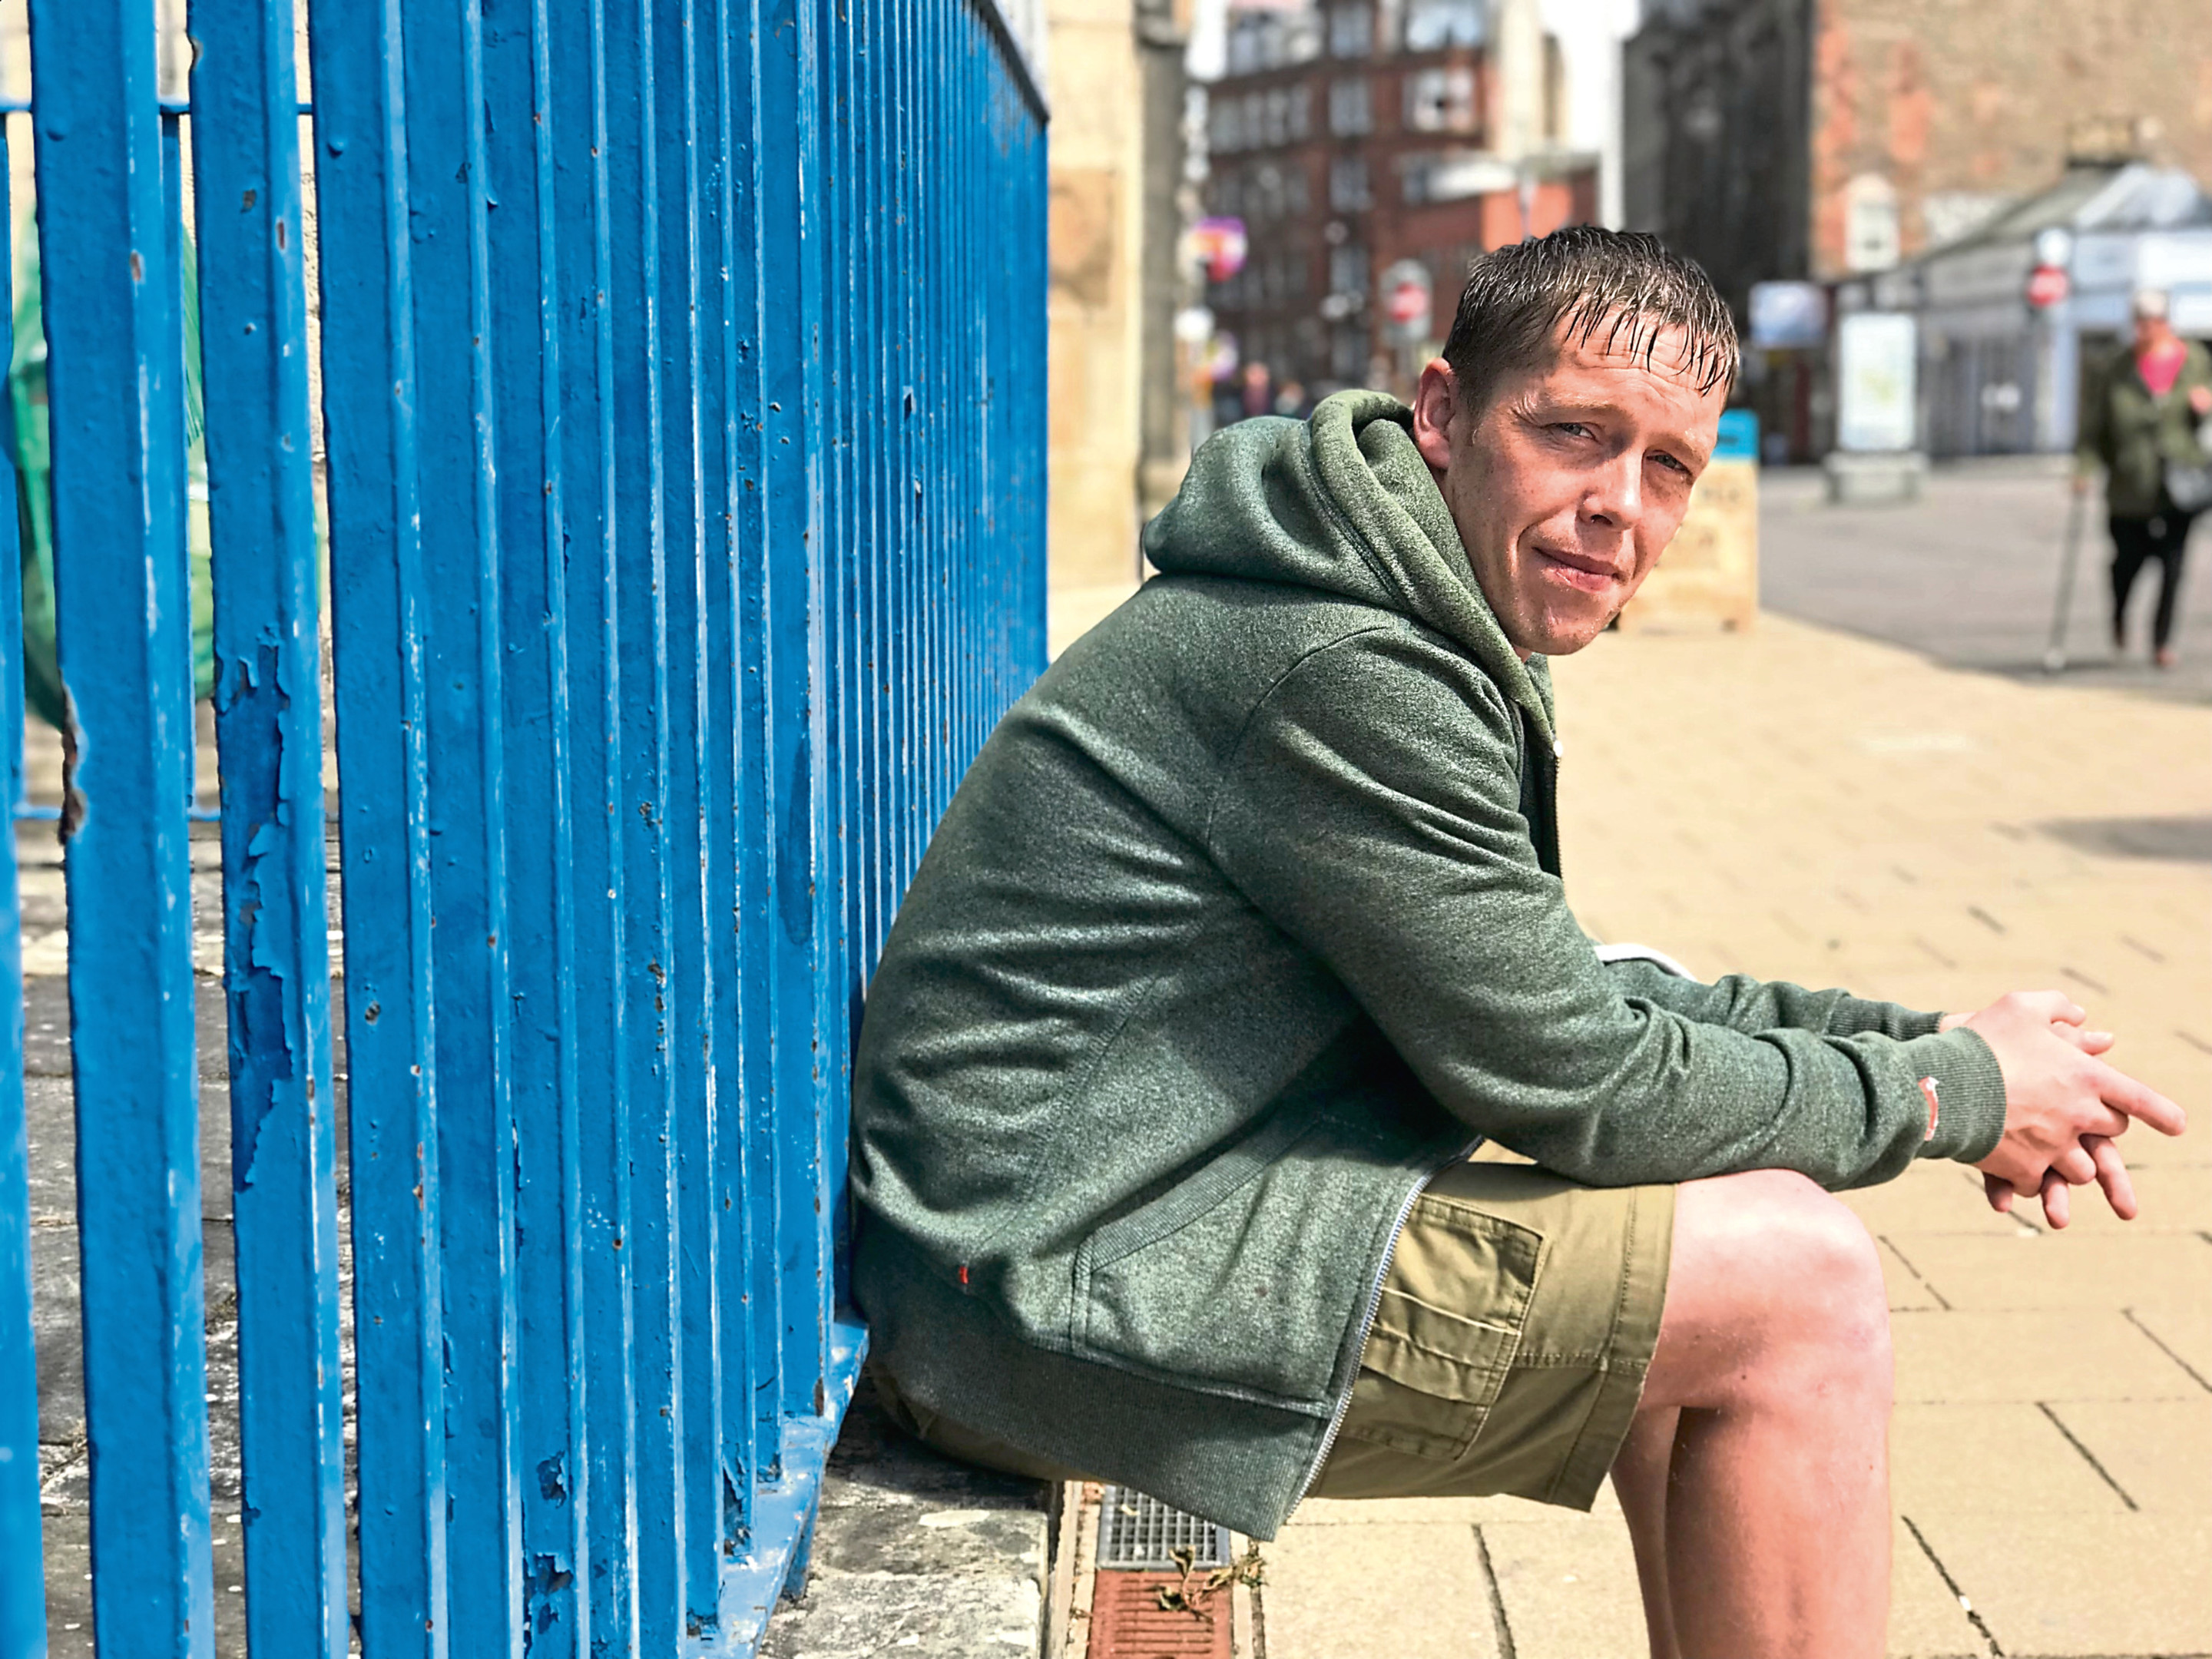 John McCabe was previously homeless but is now a mentor for people who also struggle in similar situations.